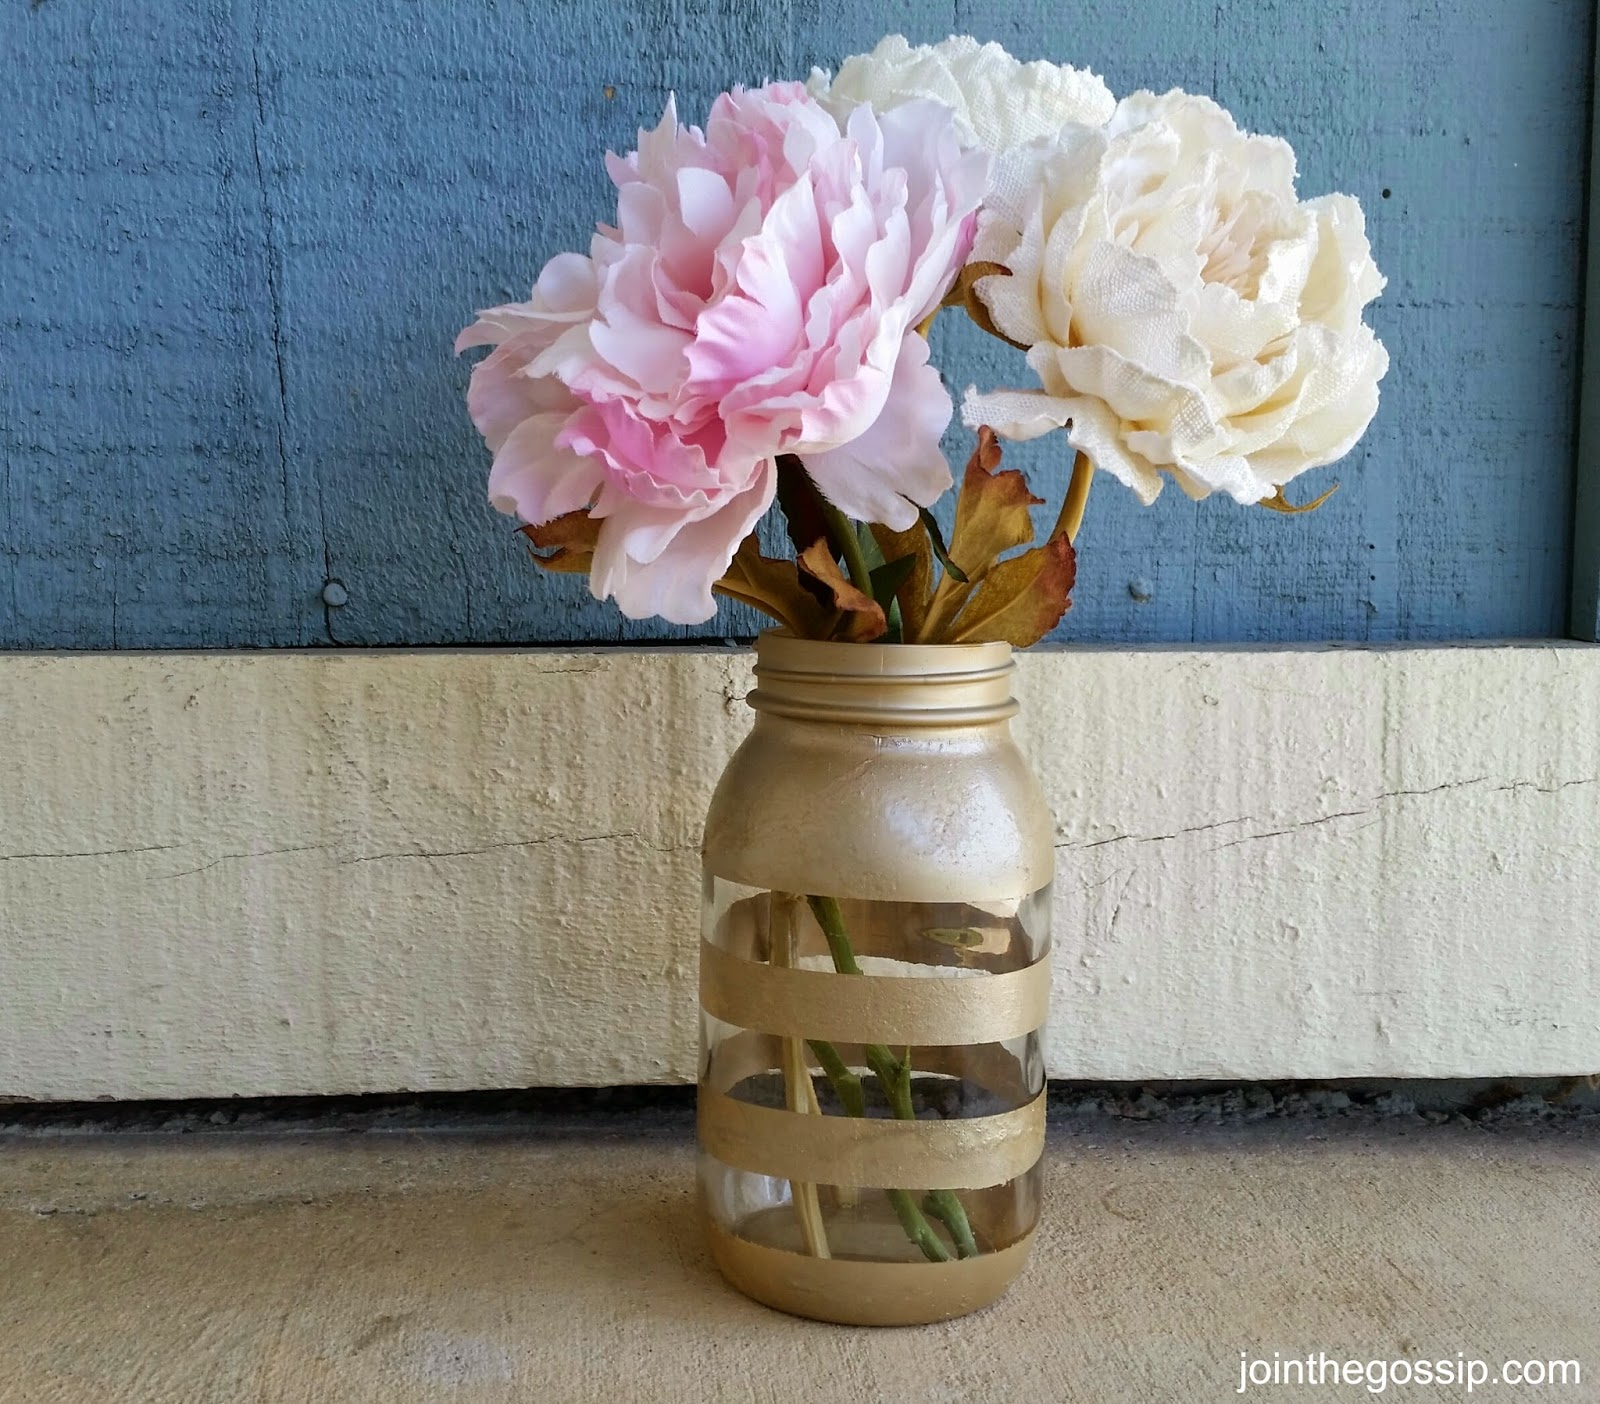 Striped Mason Jar - jointhegossip.com